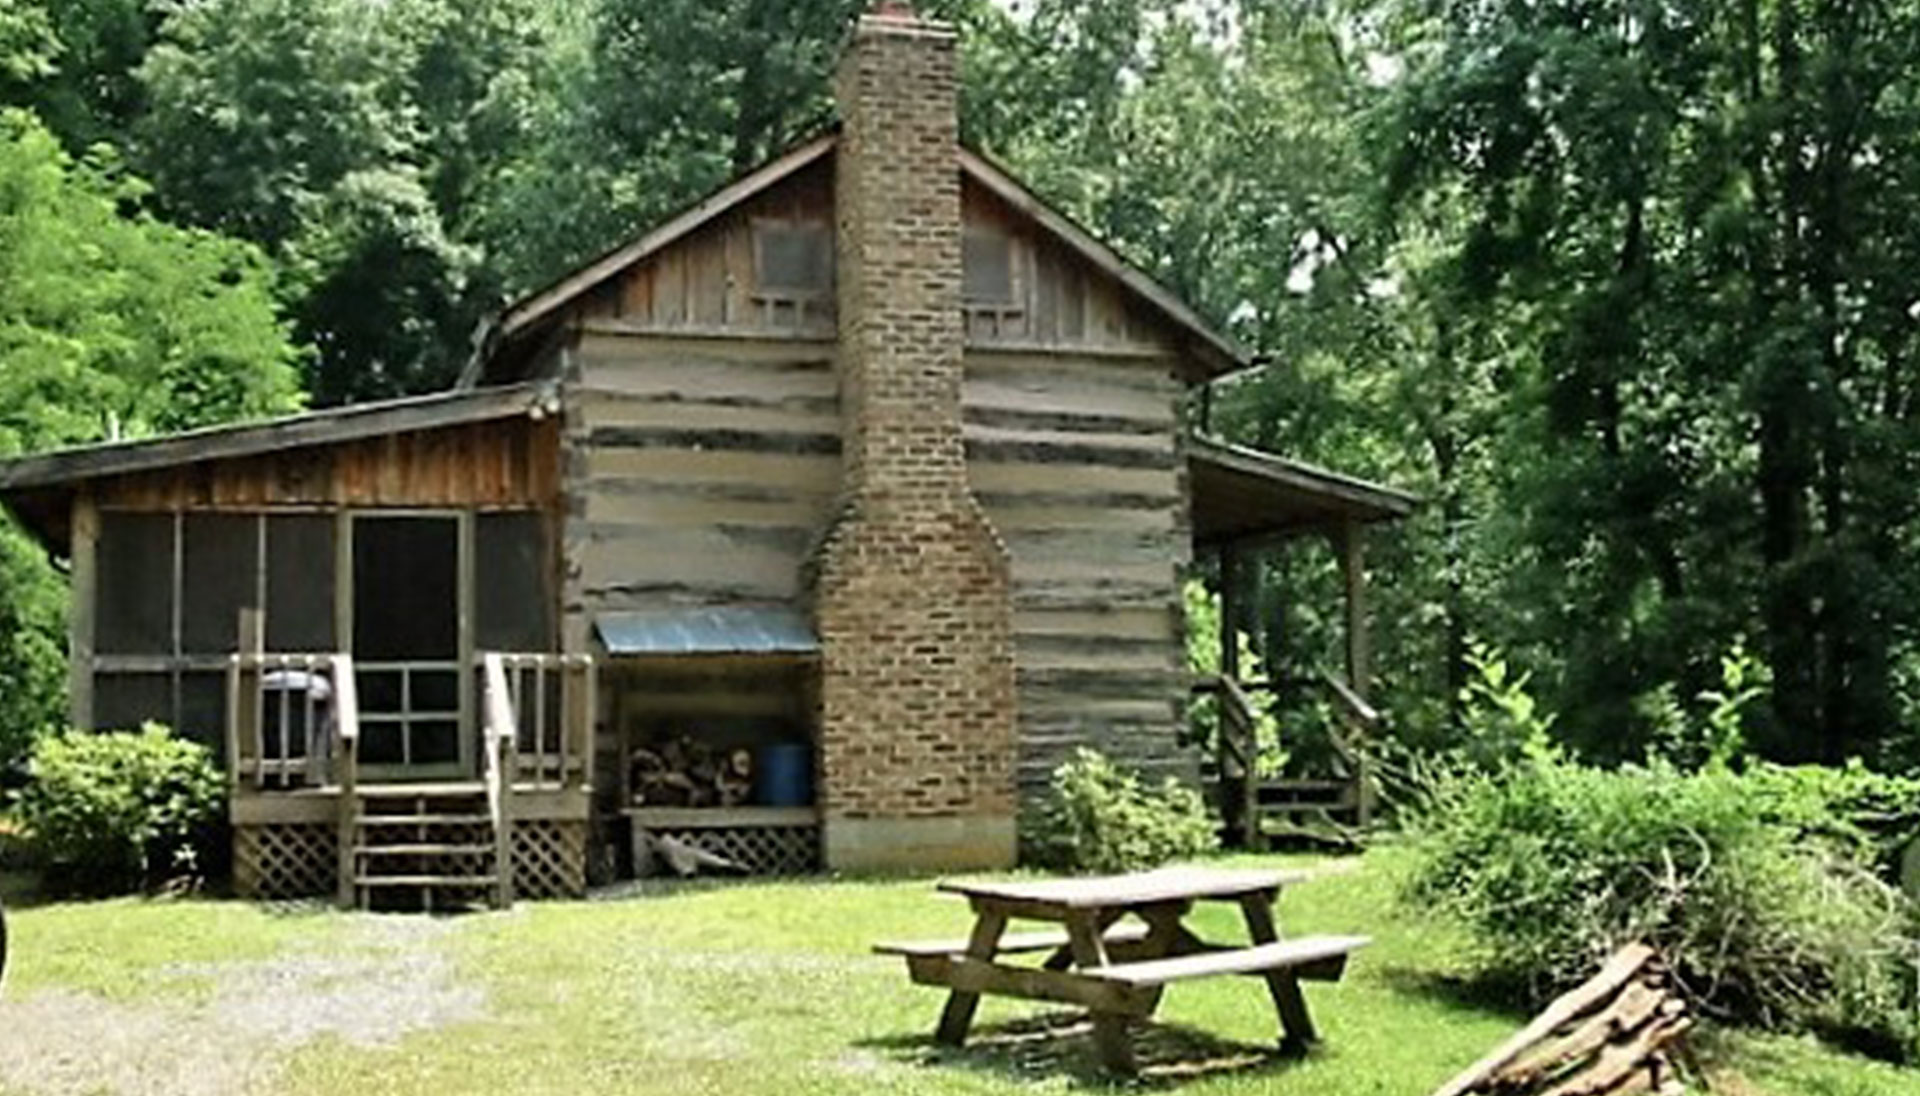 mountains sale rent als blue for ridge cabins cabin in virginia parkway va georgia log rentals gatlinburg mountain cheap